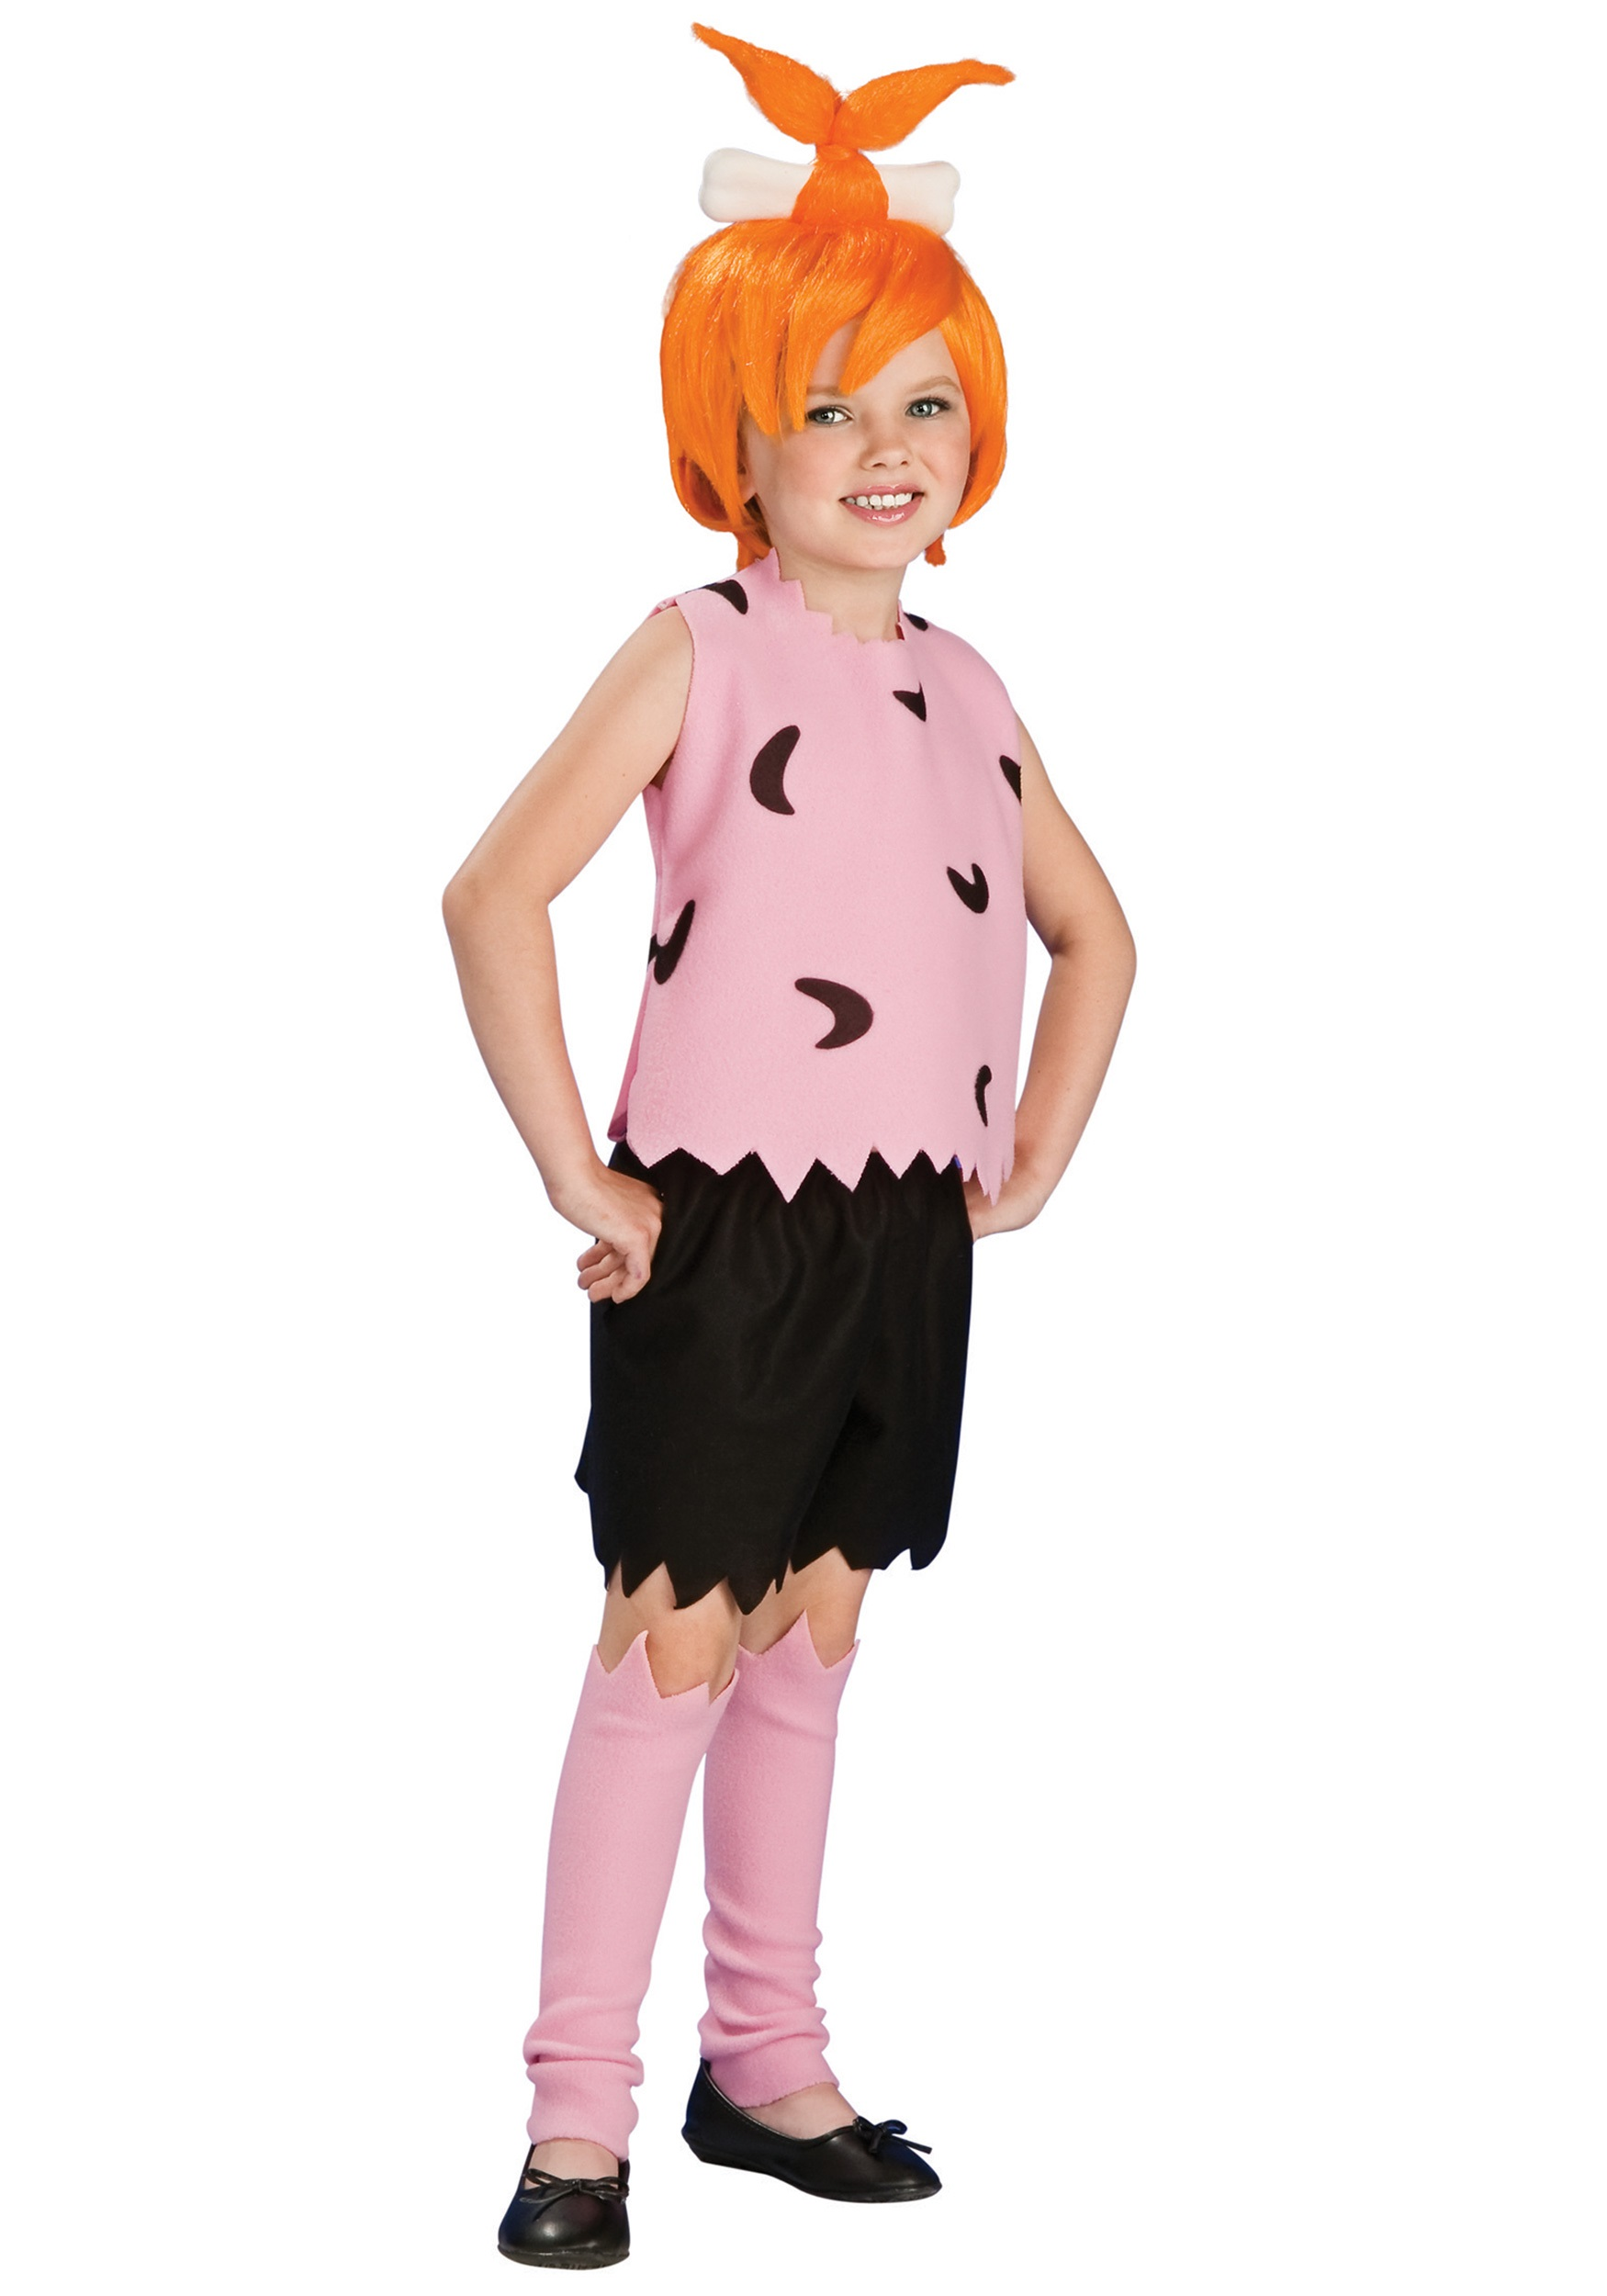 Child Pebbles Costume  sc 1 st  Halloween Costumes & Flintstones Costumes u0026 Accessories - HalloweenCostumes.com